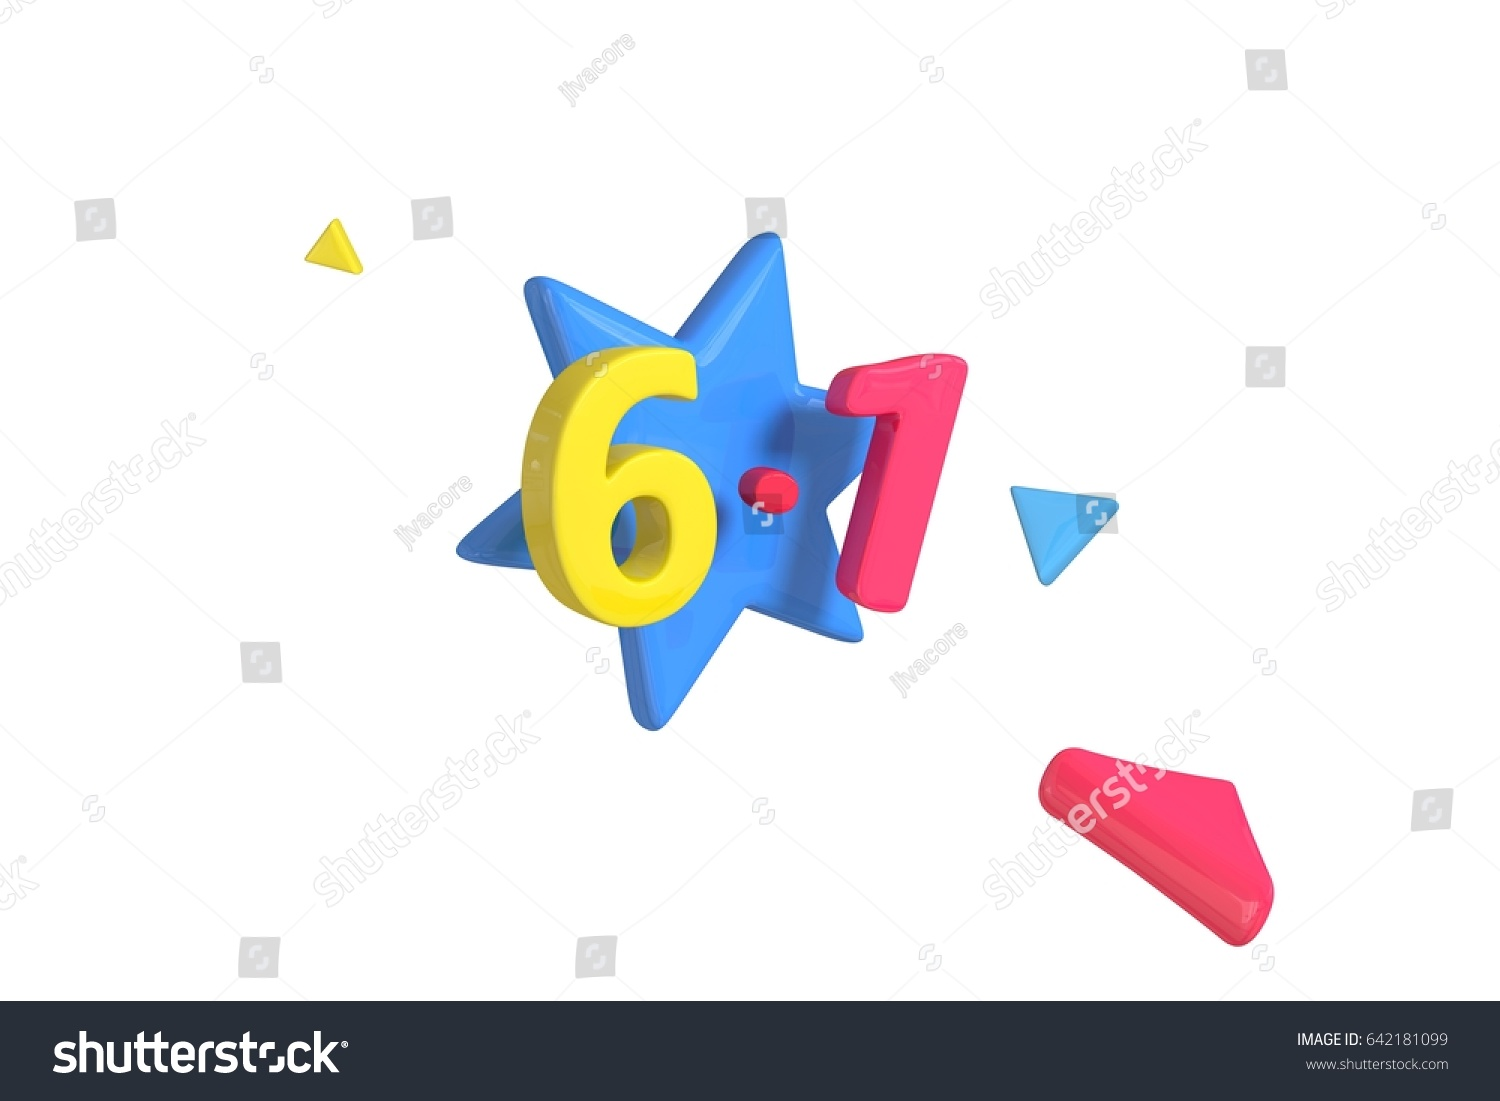 3d rendering colorful letter form word stock illustration 3d rendering colorful letter form a word 61 with some cute star or buycottarizona Images